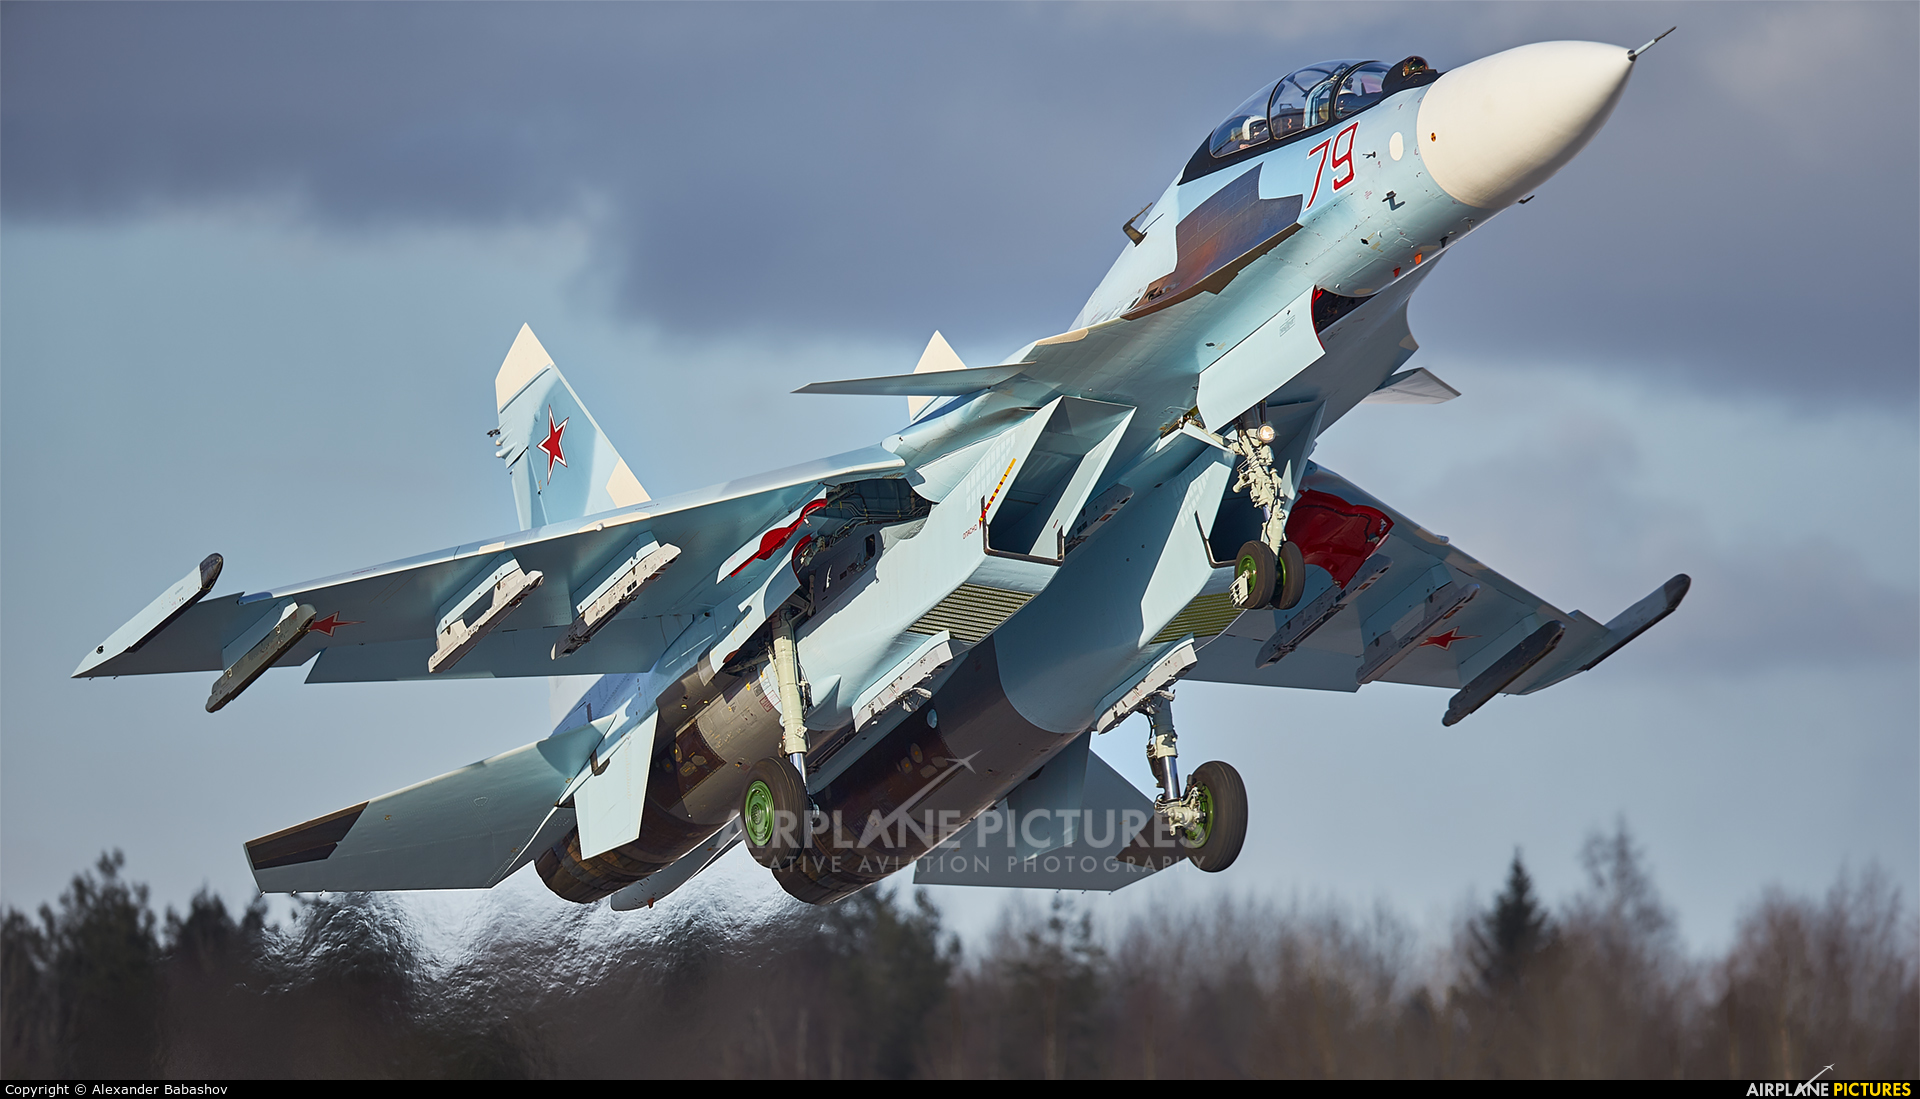 Russia - Air Force 79 aircraft at Undisclosed Location